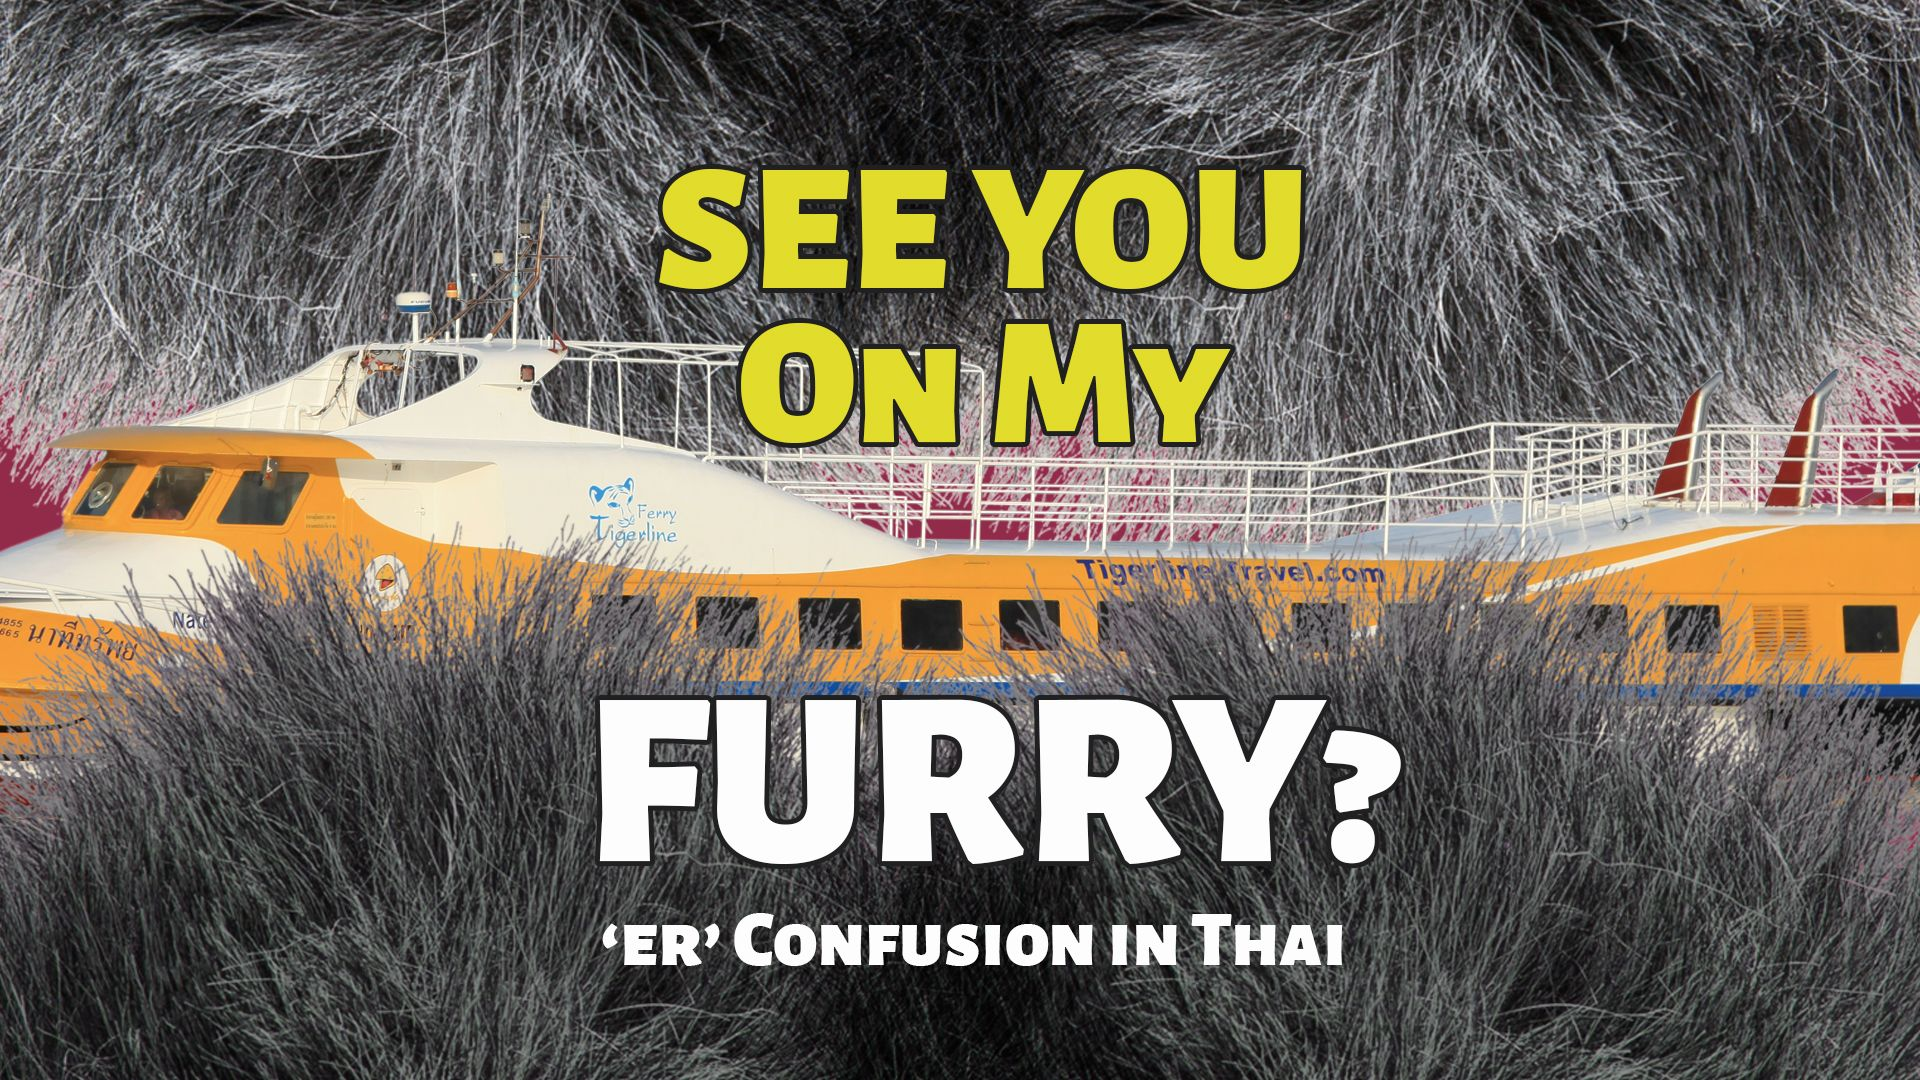 """I'll see you on my furry this evening"" - The Conundrum of Transliterating English 'er' into Thai'"